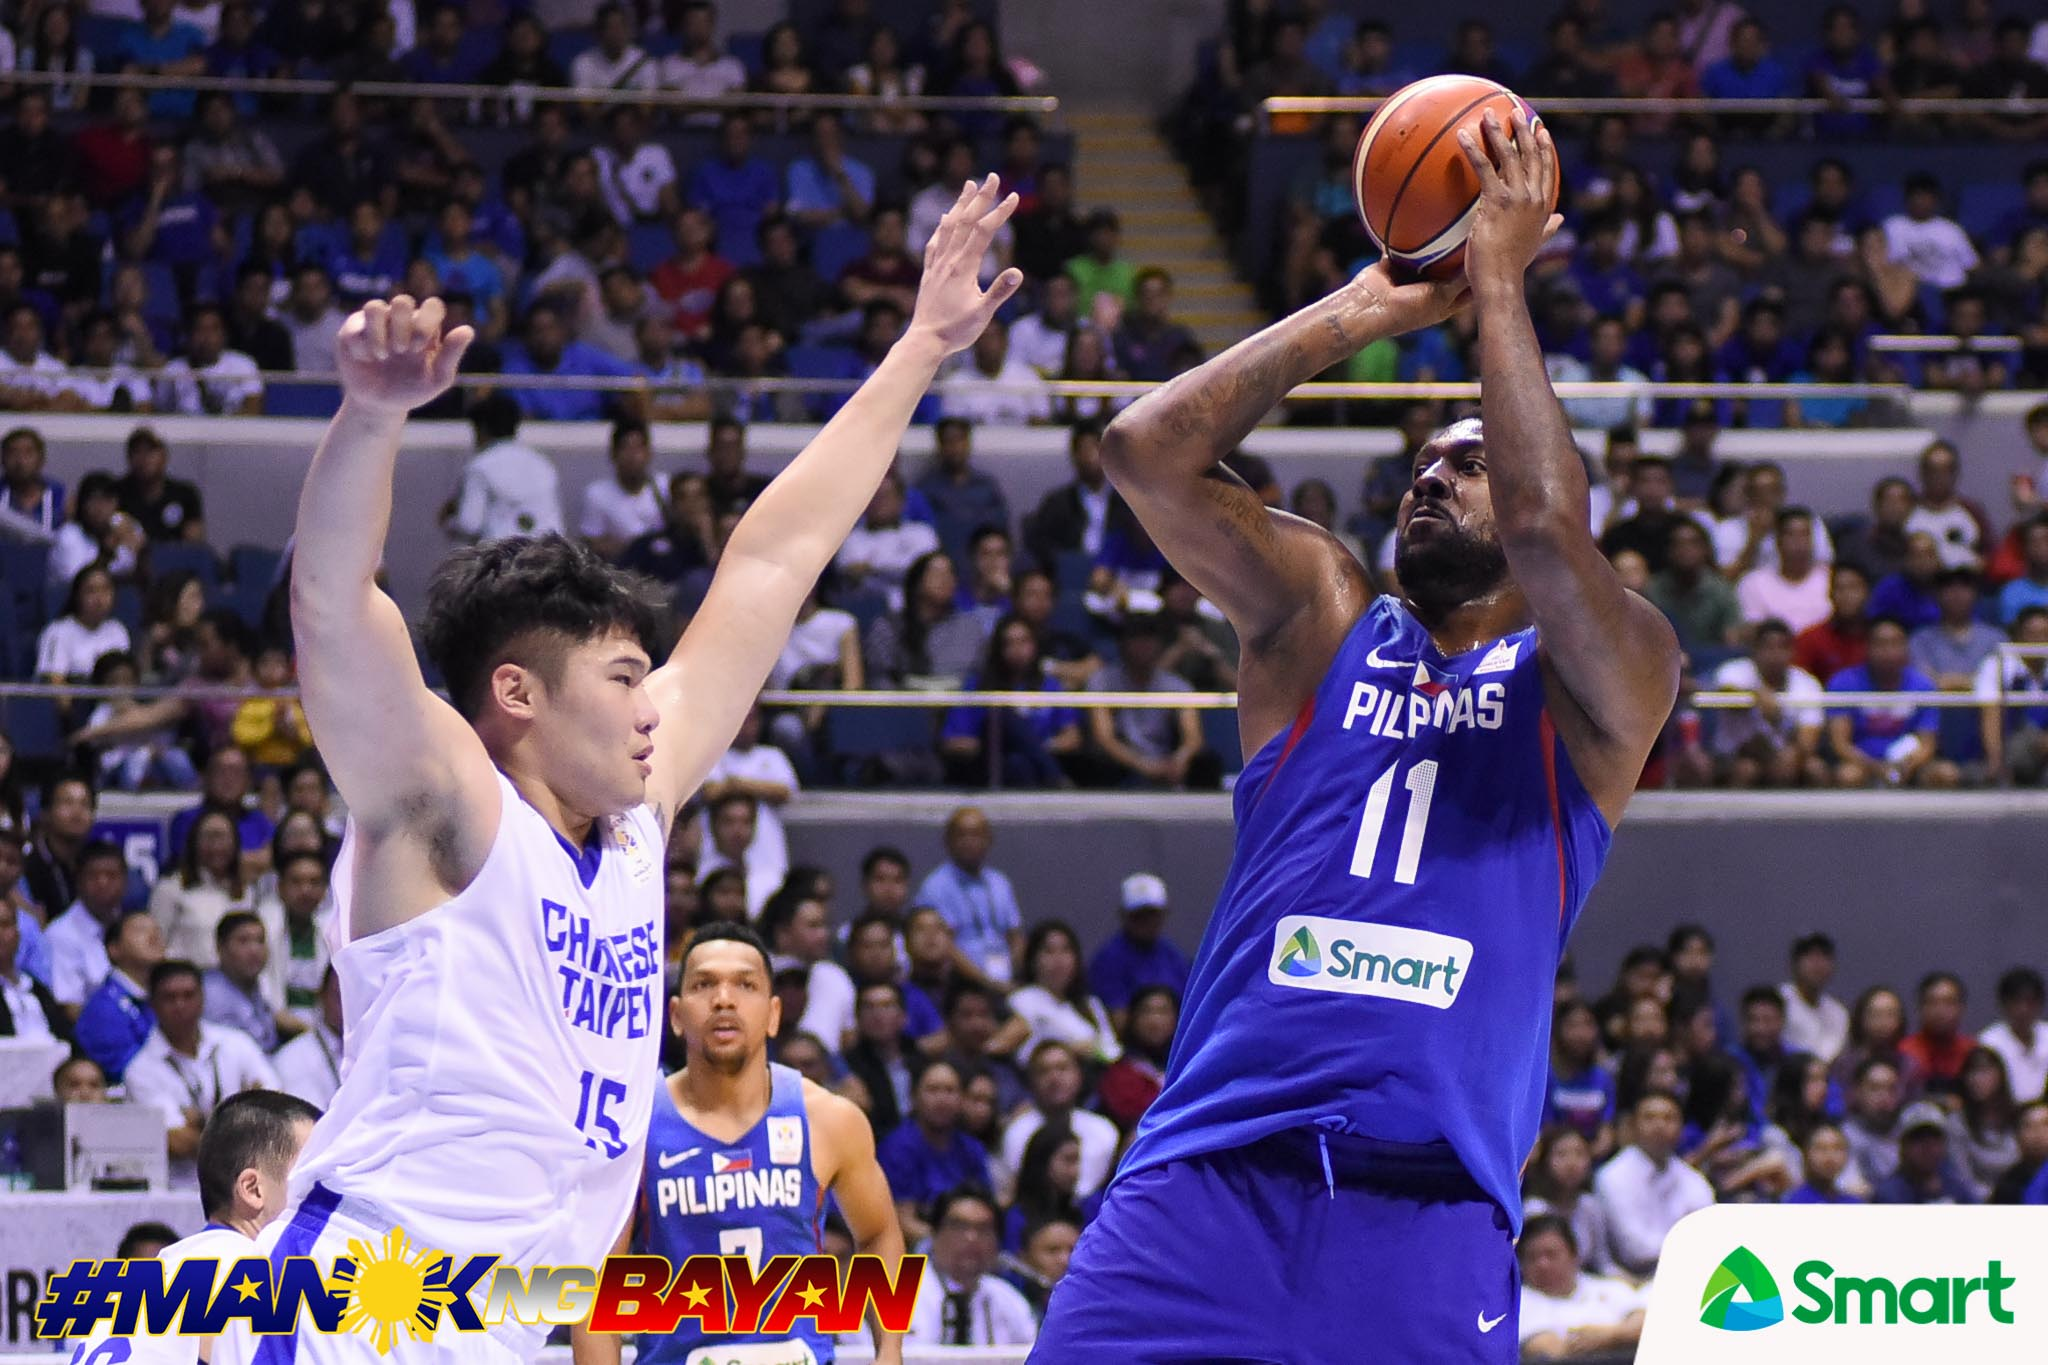 Philippine Sports News - Tiebreaker Times Gilas still sticking with Andray Blatche, says team manager Butch Antonio Basketball Gilas Pilipinas News  Butch Antonio Andray Blatche 2019 FIBA World Cup Qualifiers Group B 2019 FIBA World Cup Qualifiers